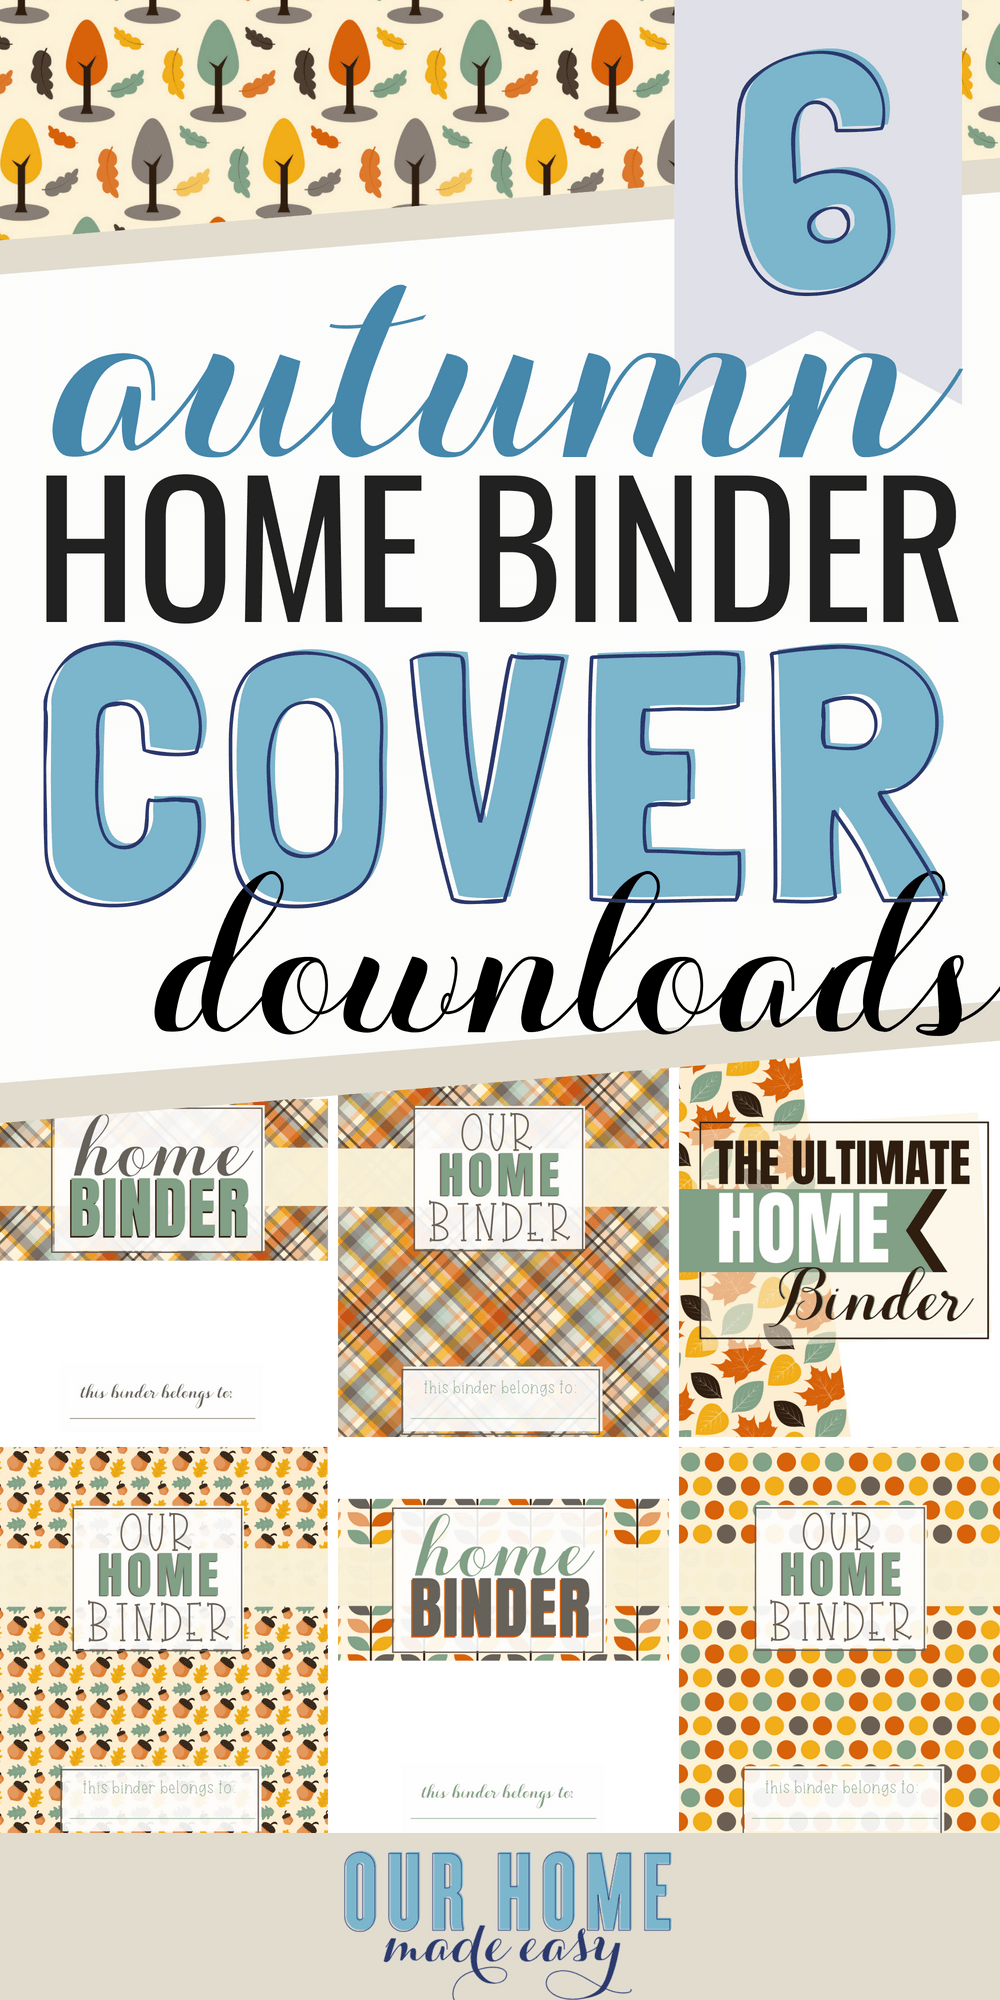 Want to change up your home binder covers in time for autumn? Simply print off one of these 6 cover options! Use one or use all 6, they are free to use! #organization #home #organizer #homedecor